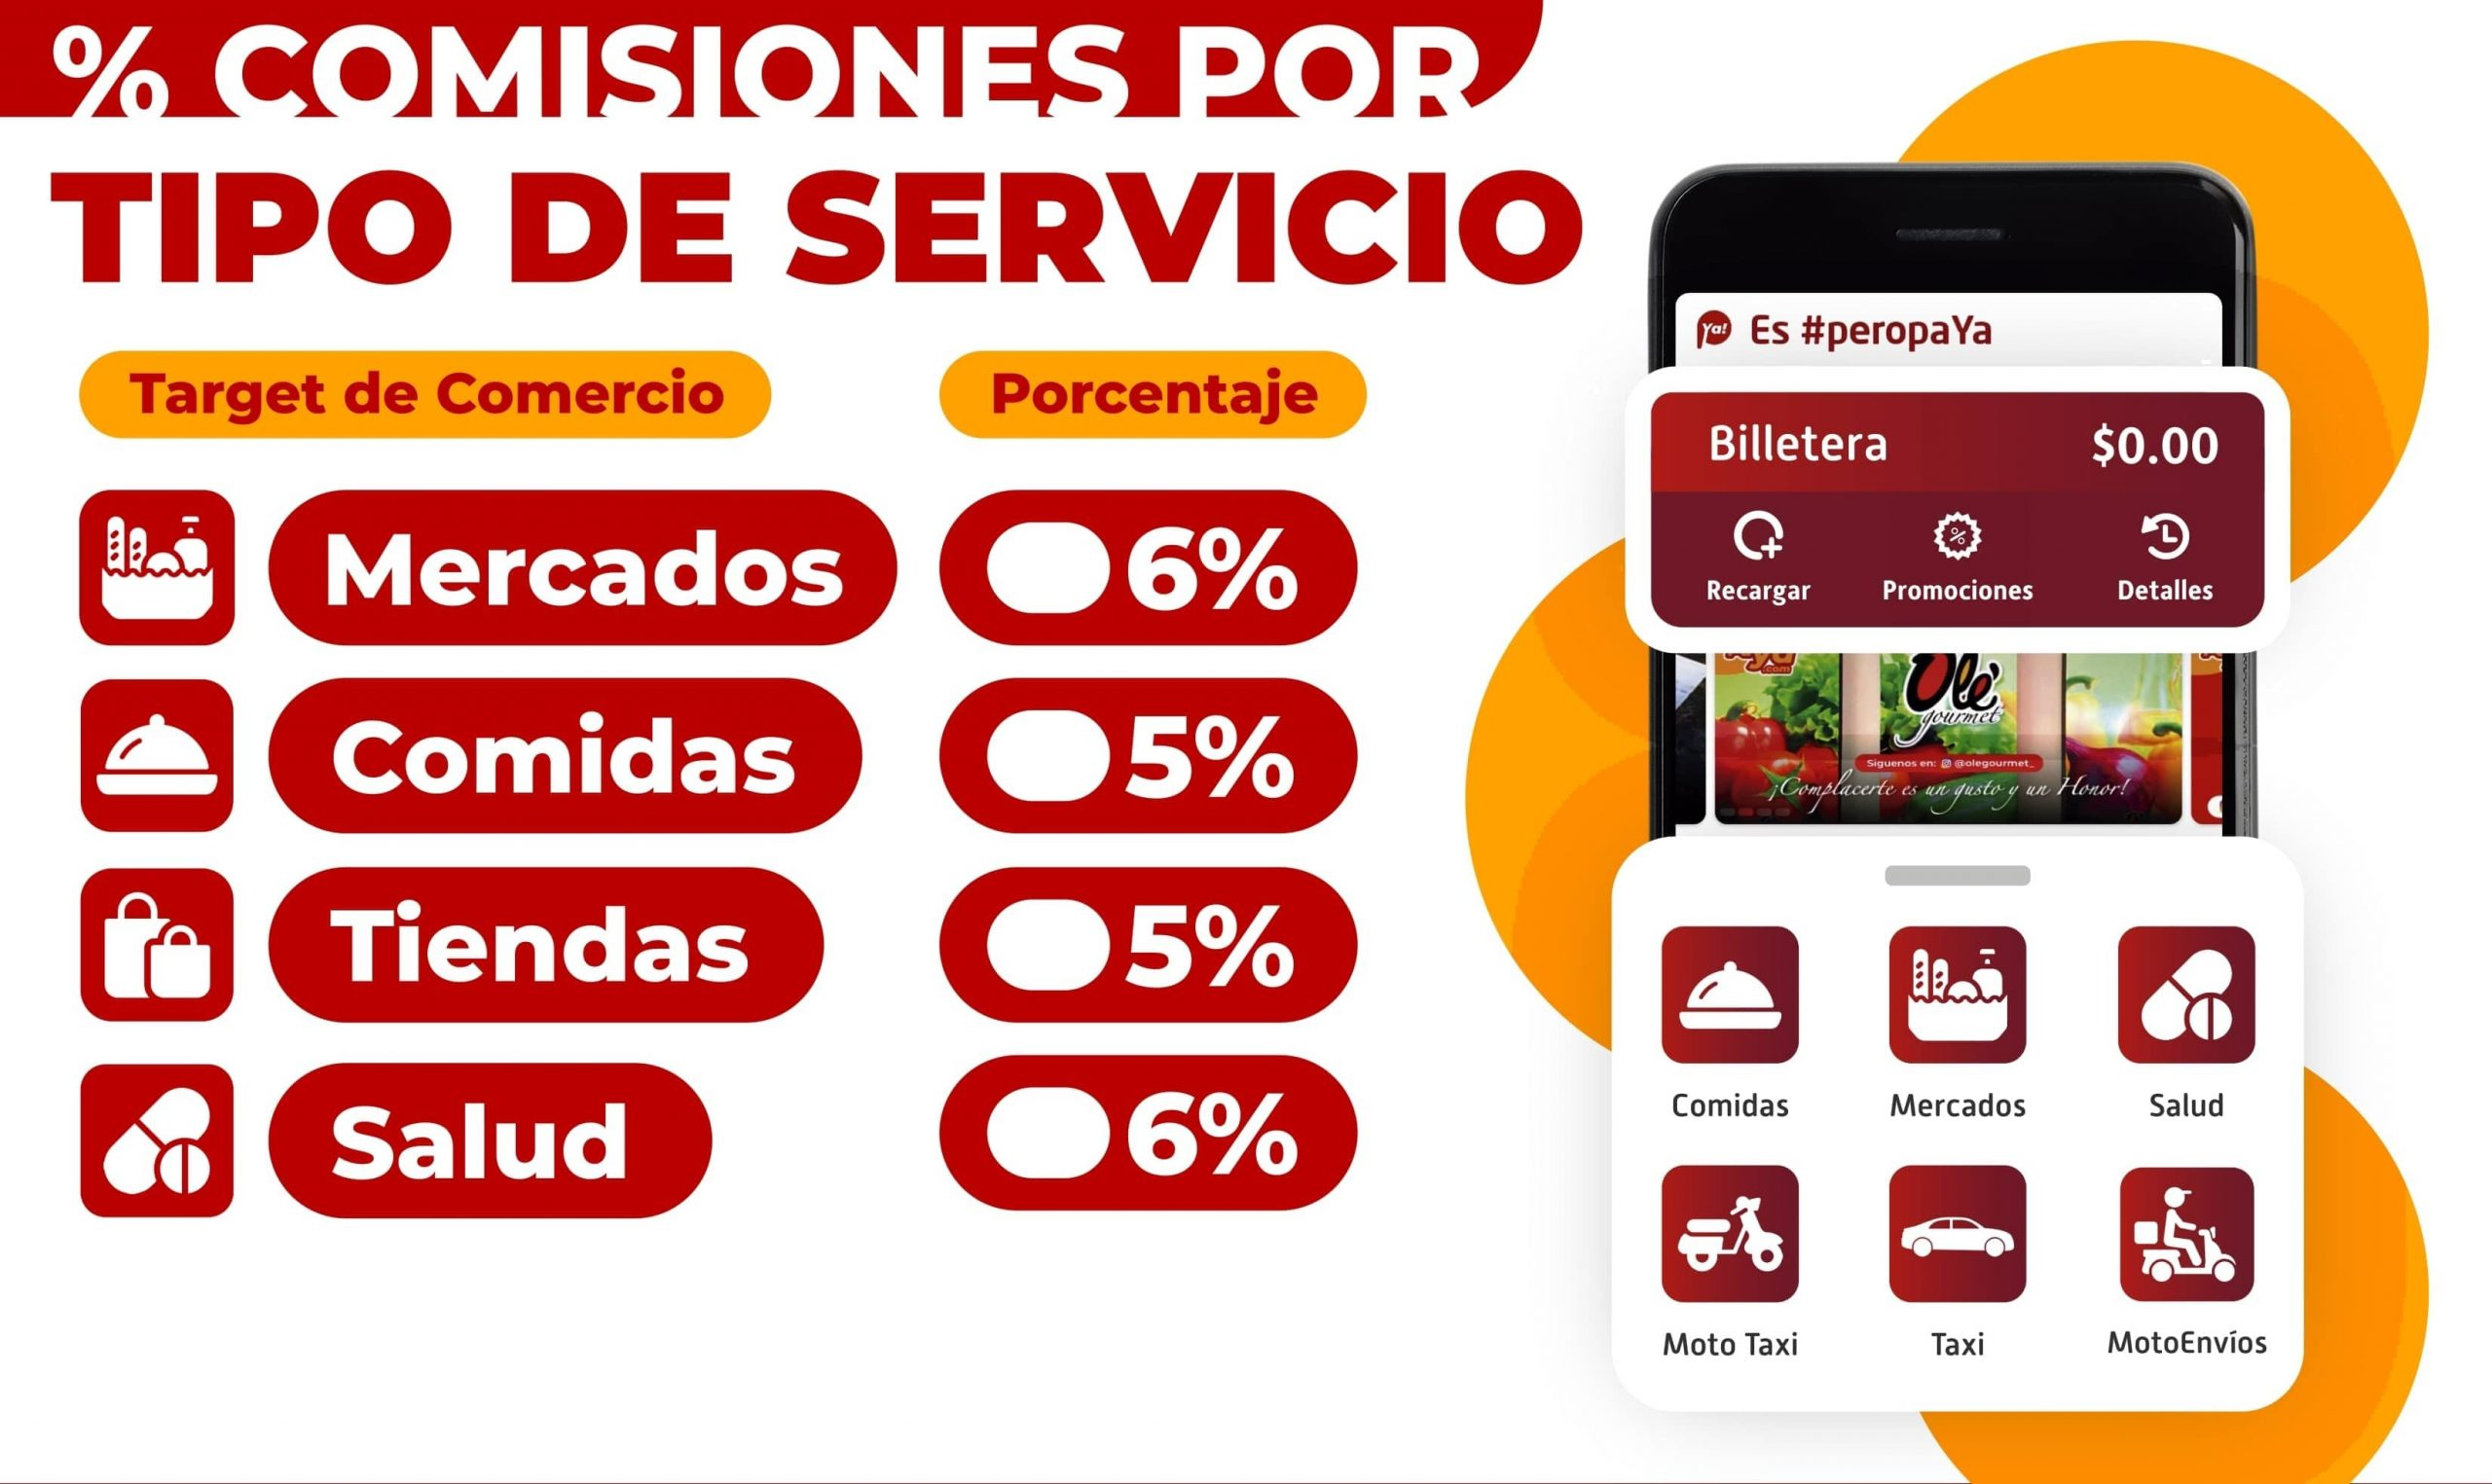 https://www.peropaya.com/wp-content/uploads/2021/02/comisiones-comercios-scaled.jpg